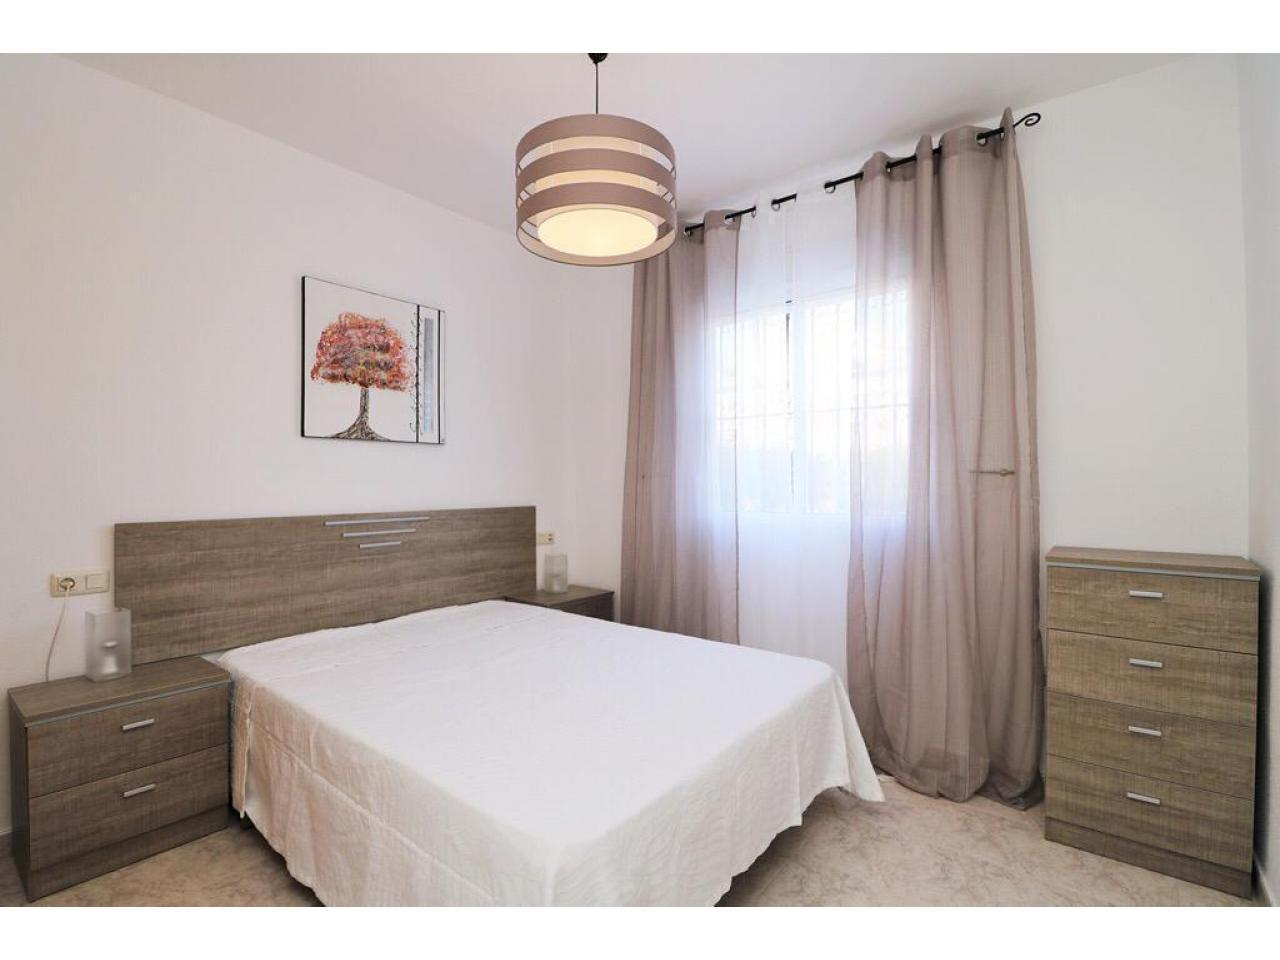 Apartment in Torrevieja, Spain for rent - 3